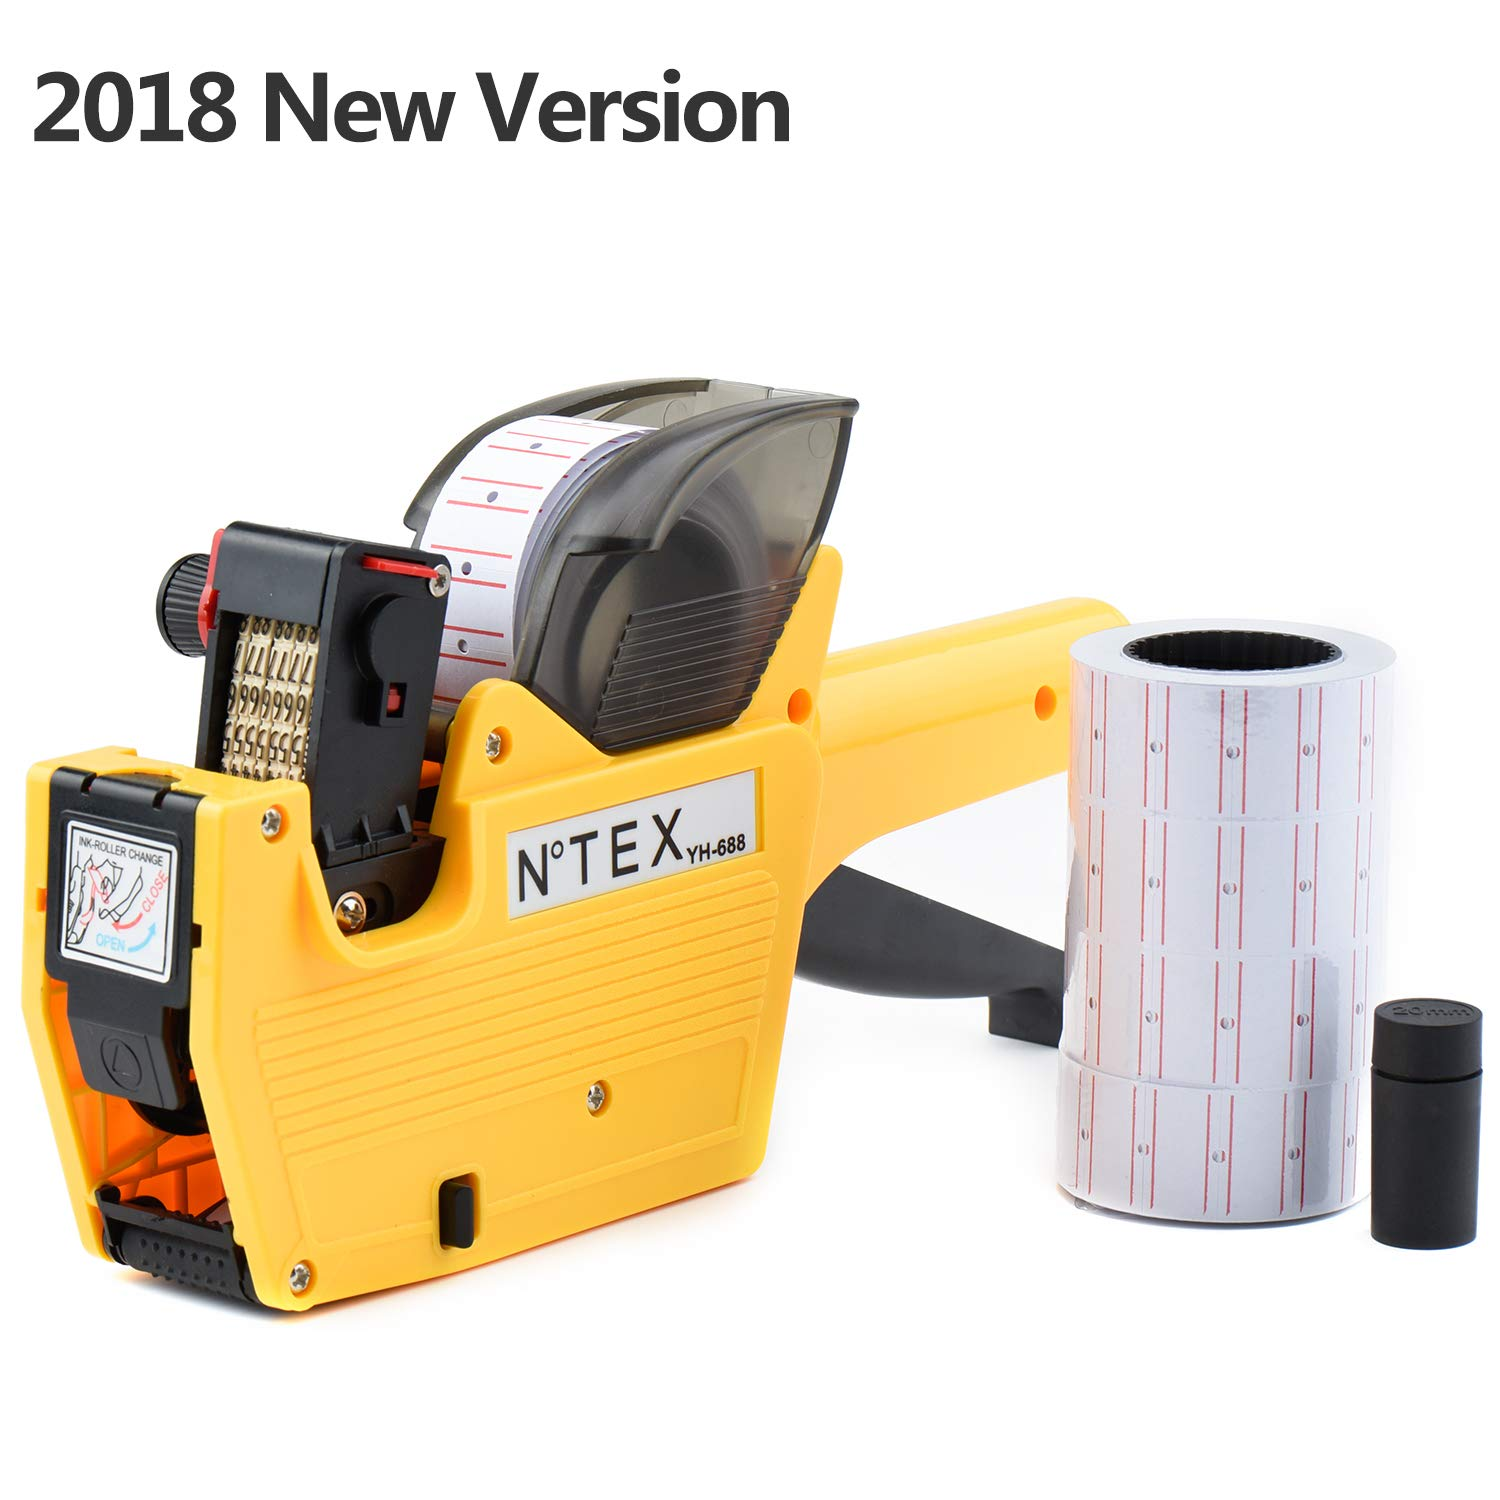 Crossmo YH-688 8 Digits Price Tag Gun Labeler Labeller Included 2500 Labels and Ink Refill for Office, Retail Shop, Grocery Store,Super Market(Orange)